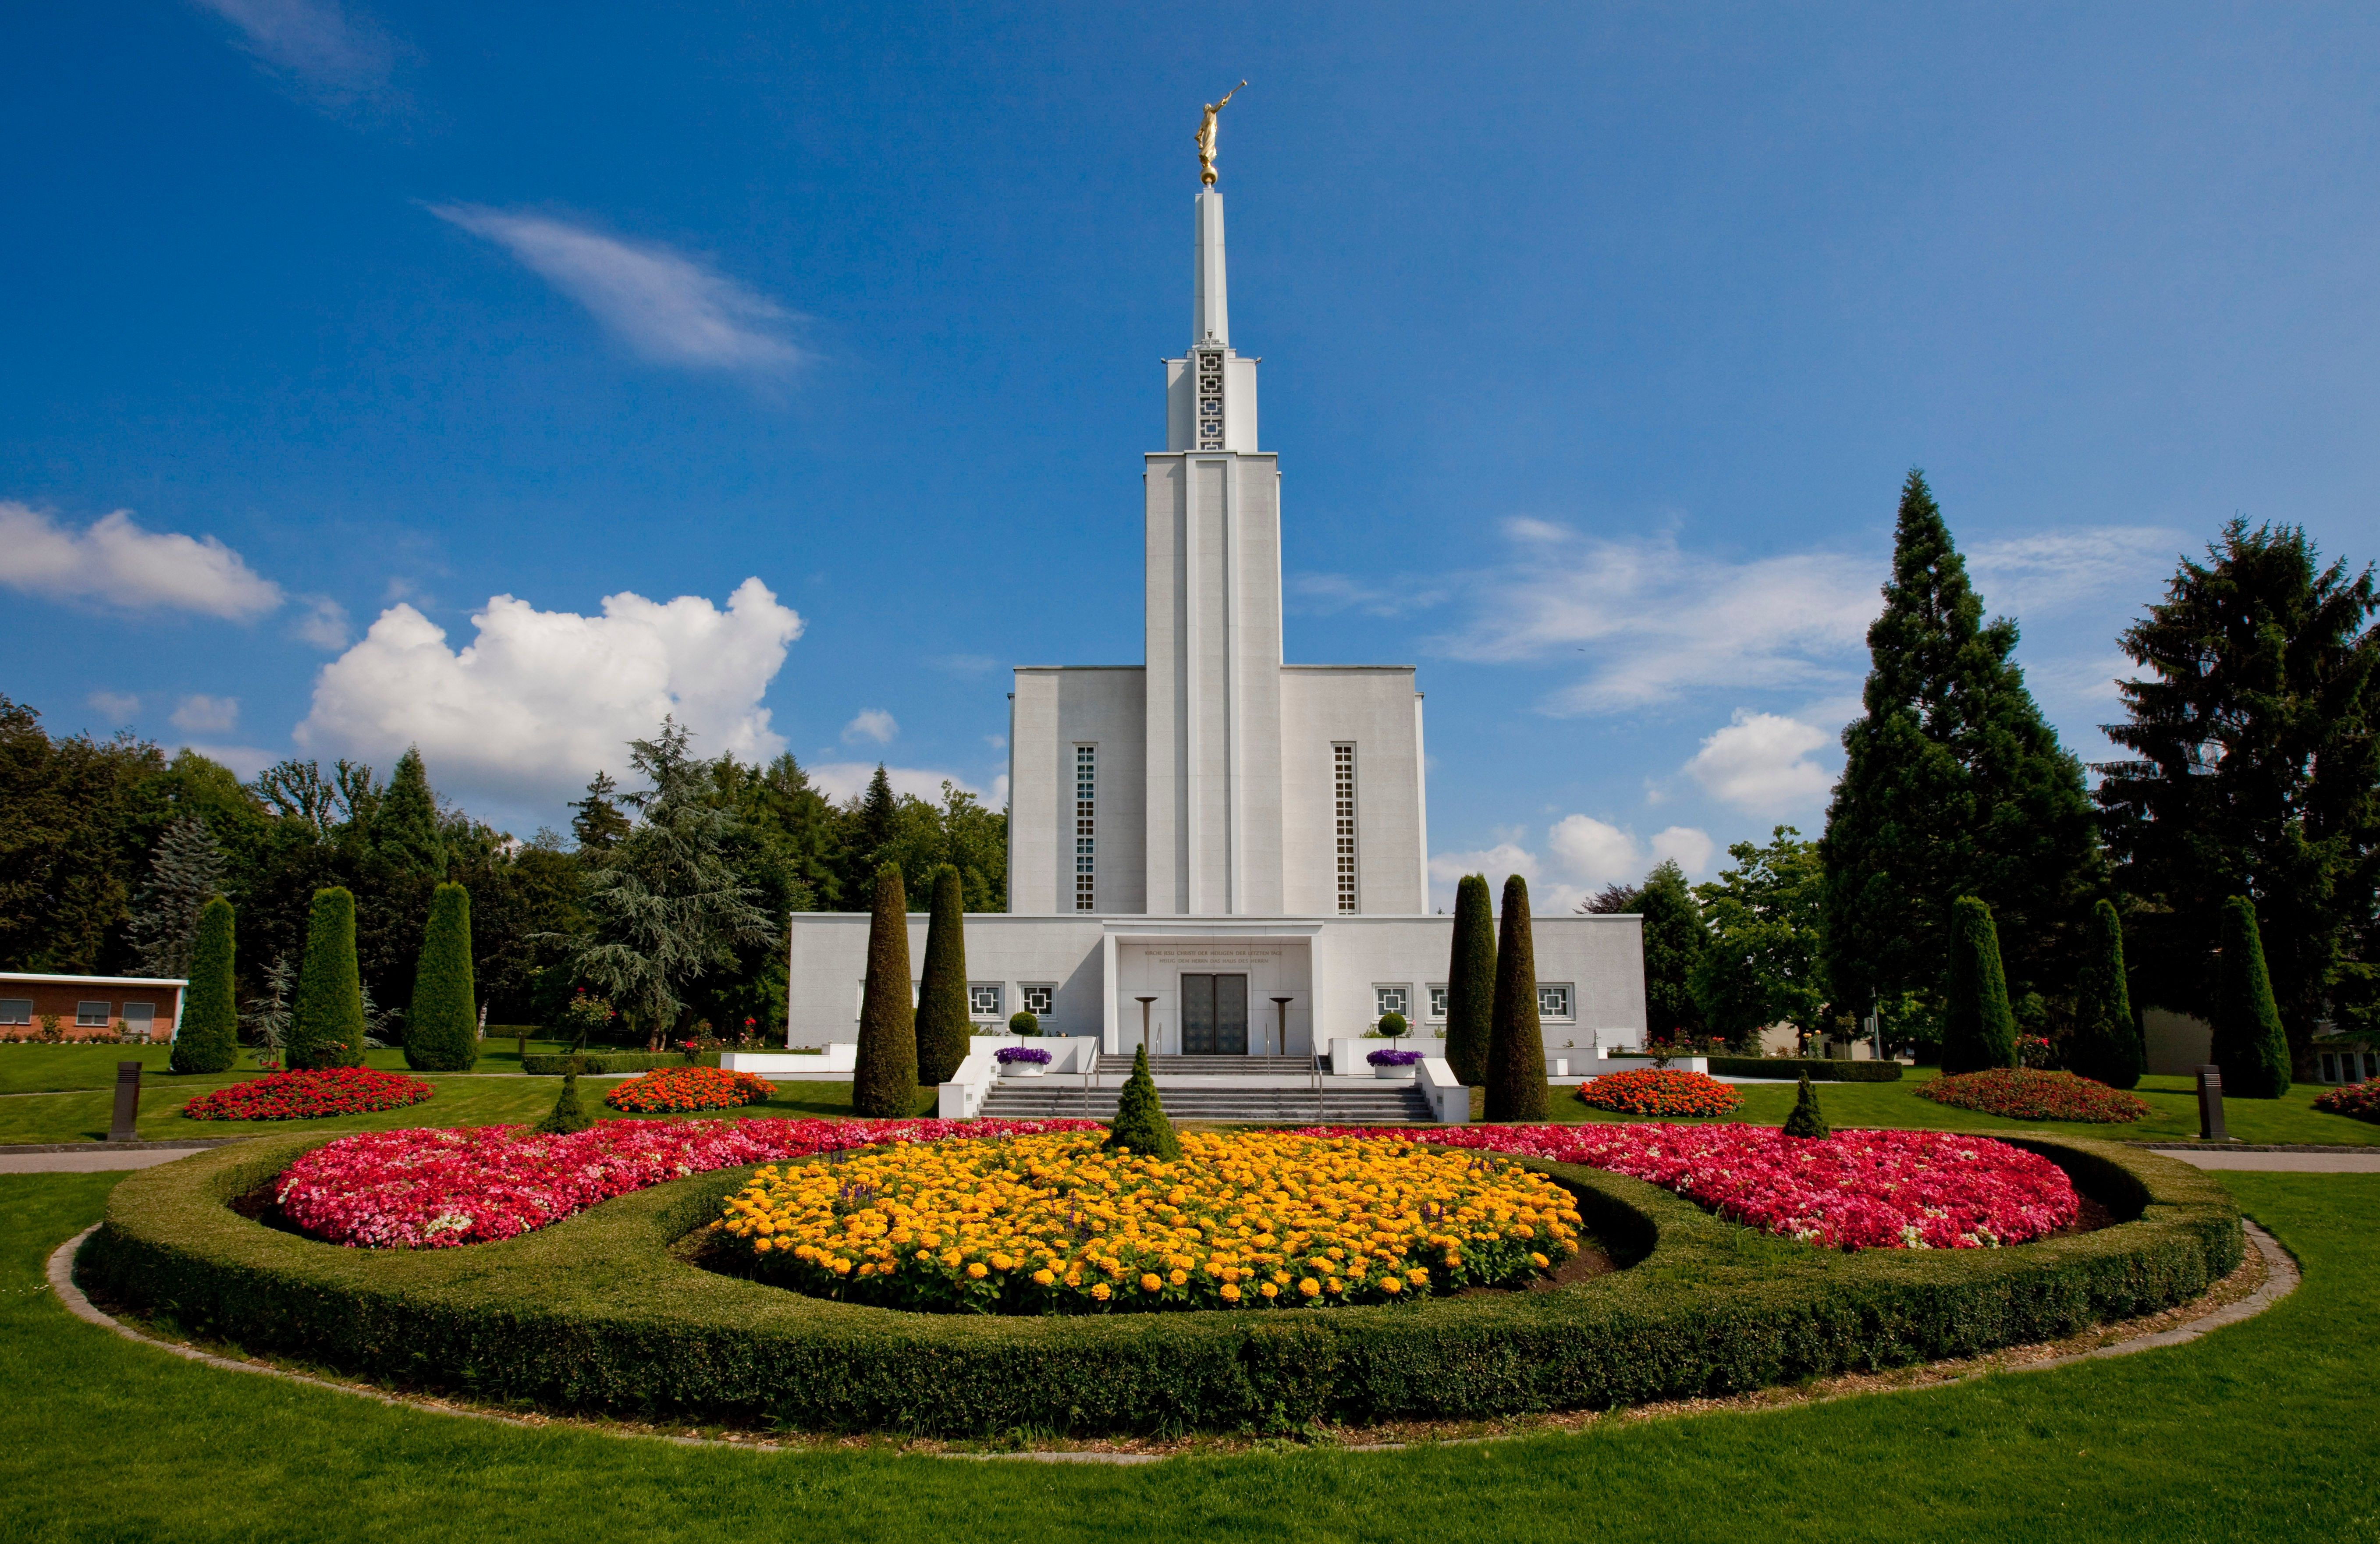 A view of the Bern Switzerland Temple and grounds during the day.